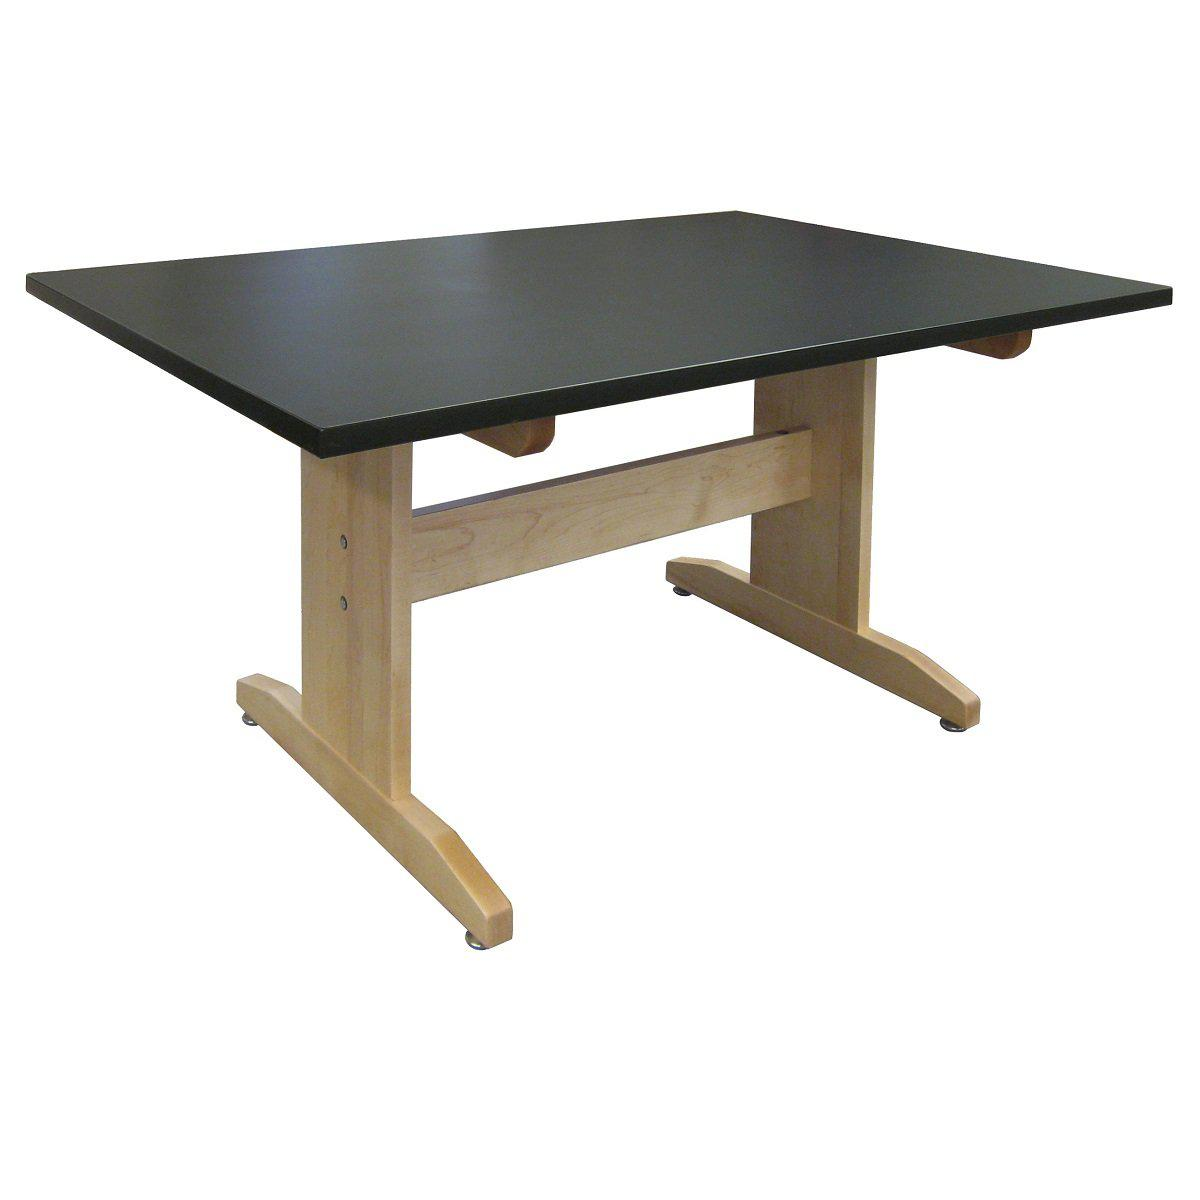 "Art Table, 42"" x 60"" Black HPL Top, 36"" High"